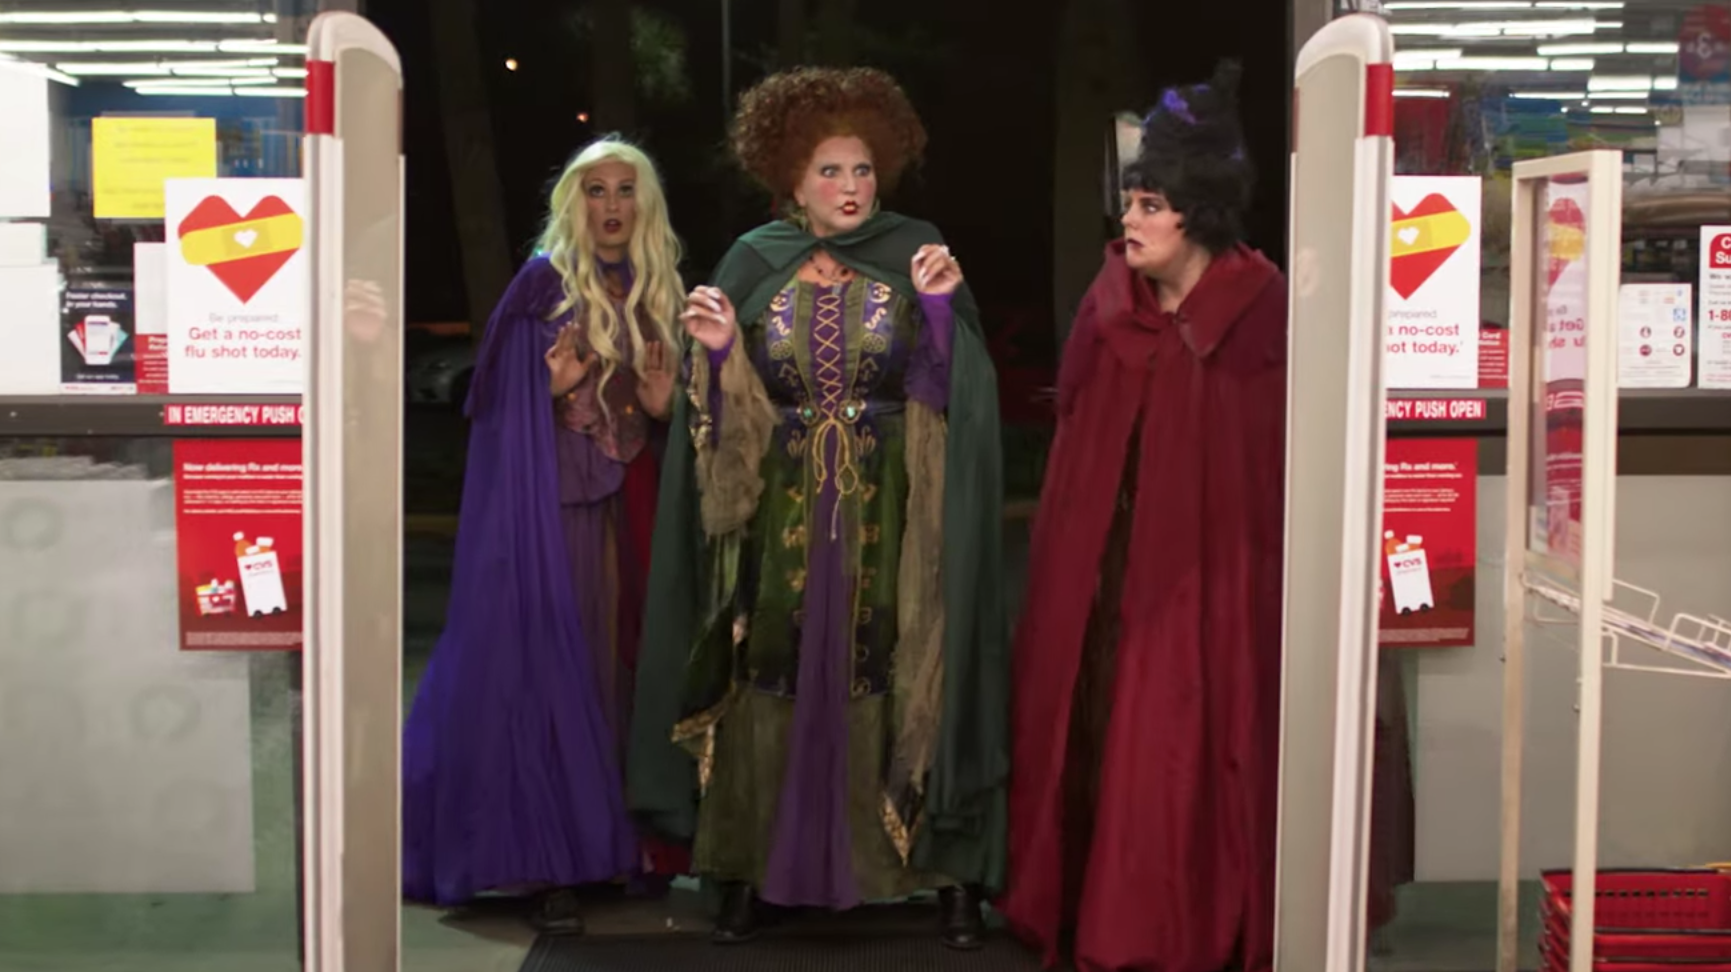 A Hocus Pocus Fan Musical Recreates The Classic Halloween Film's 'Lost Scenes'